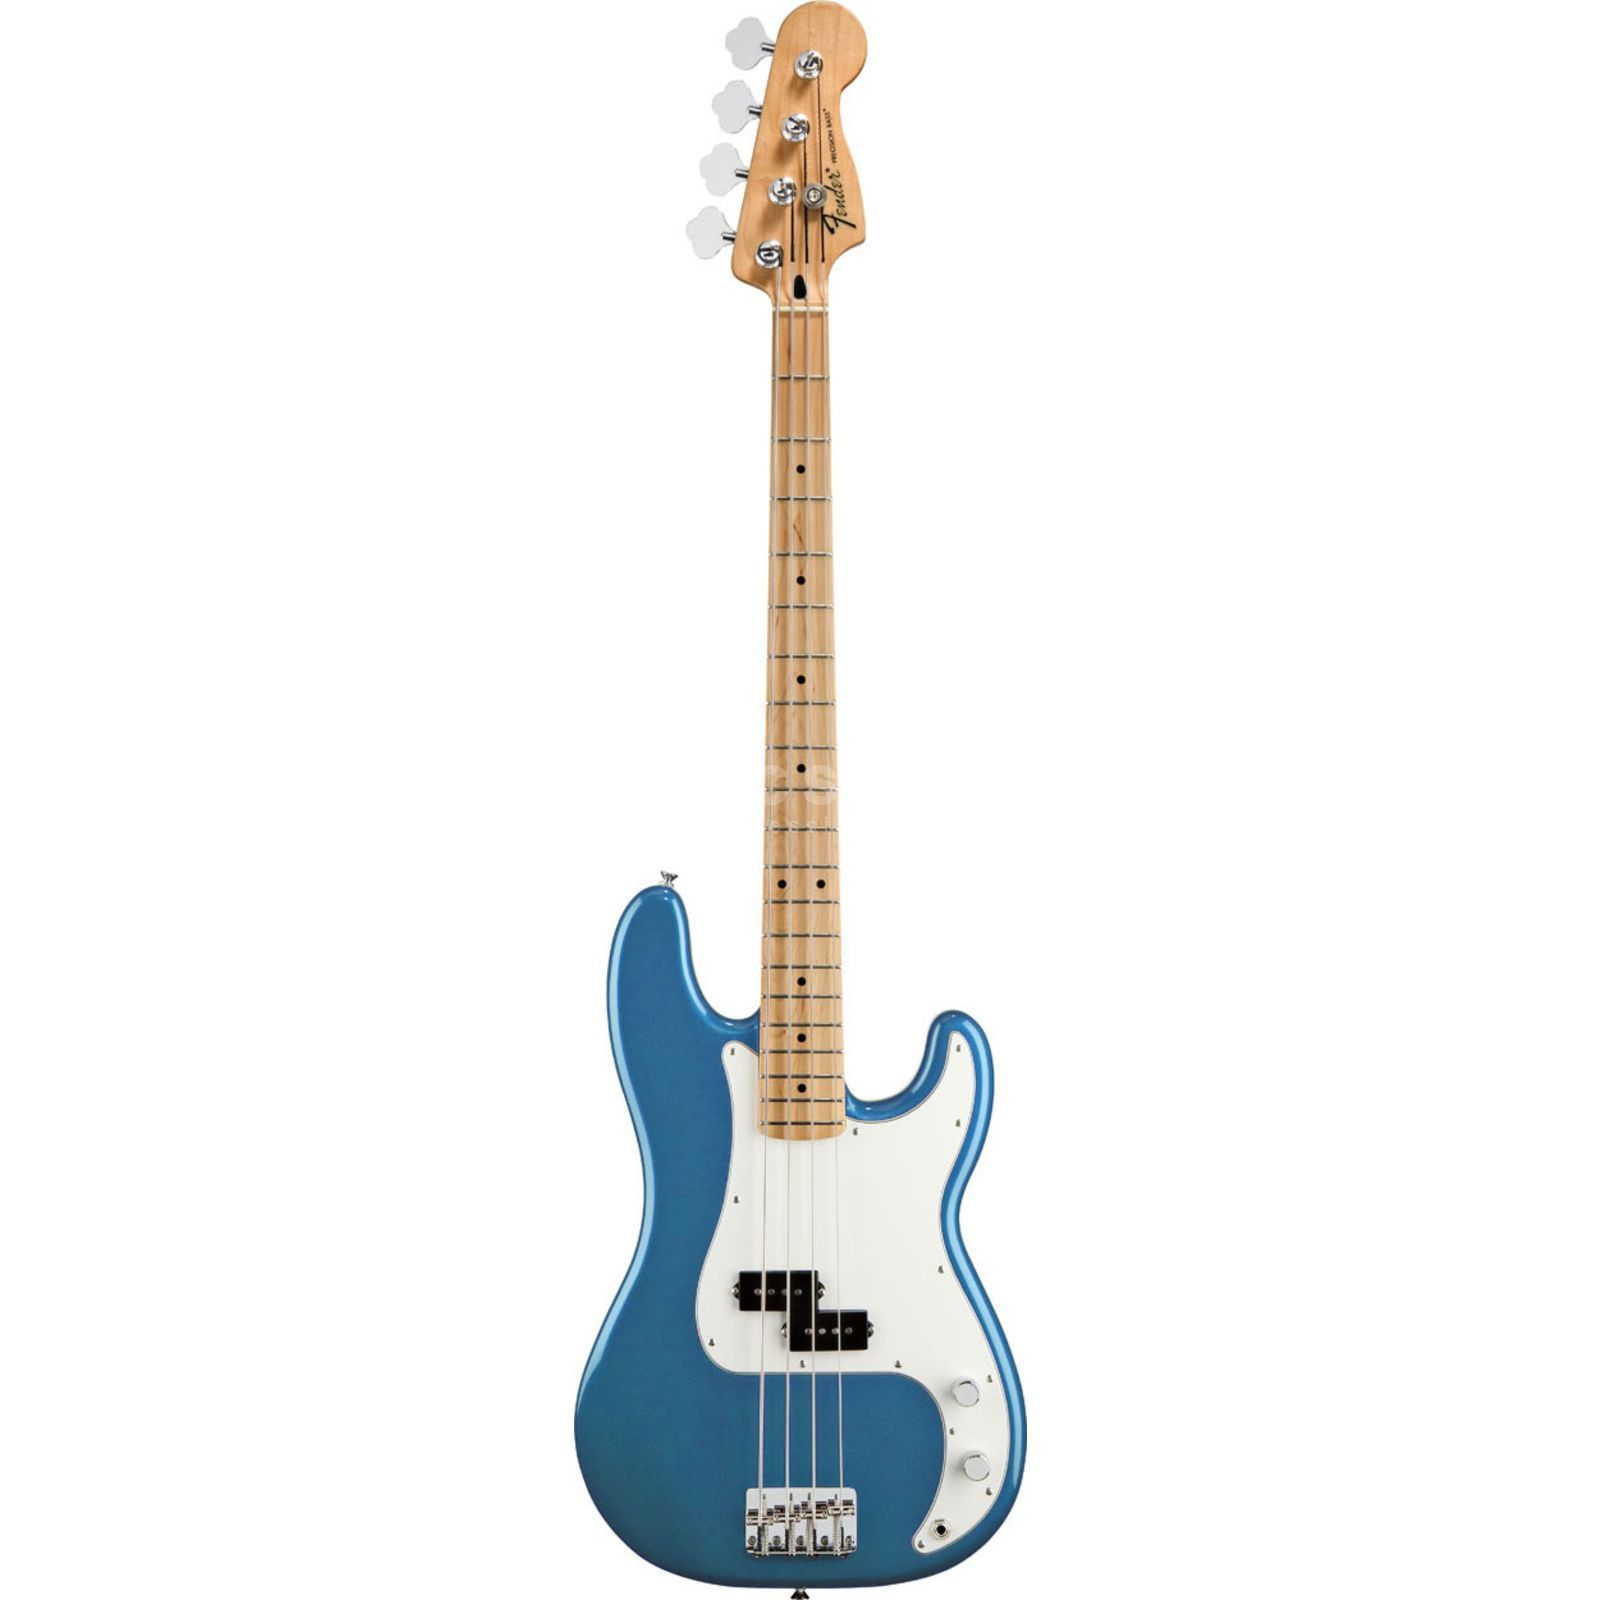 Fender Standard Precision Bass MN Lake Placid Blue Image du produit